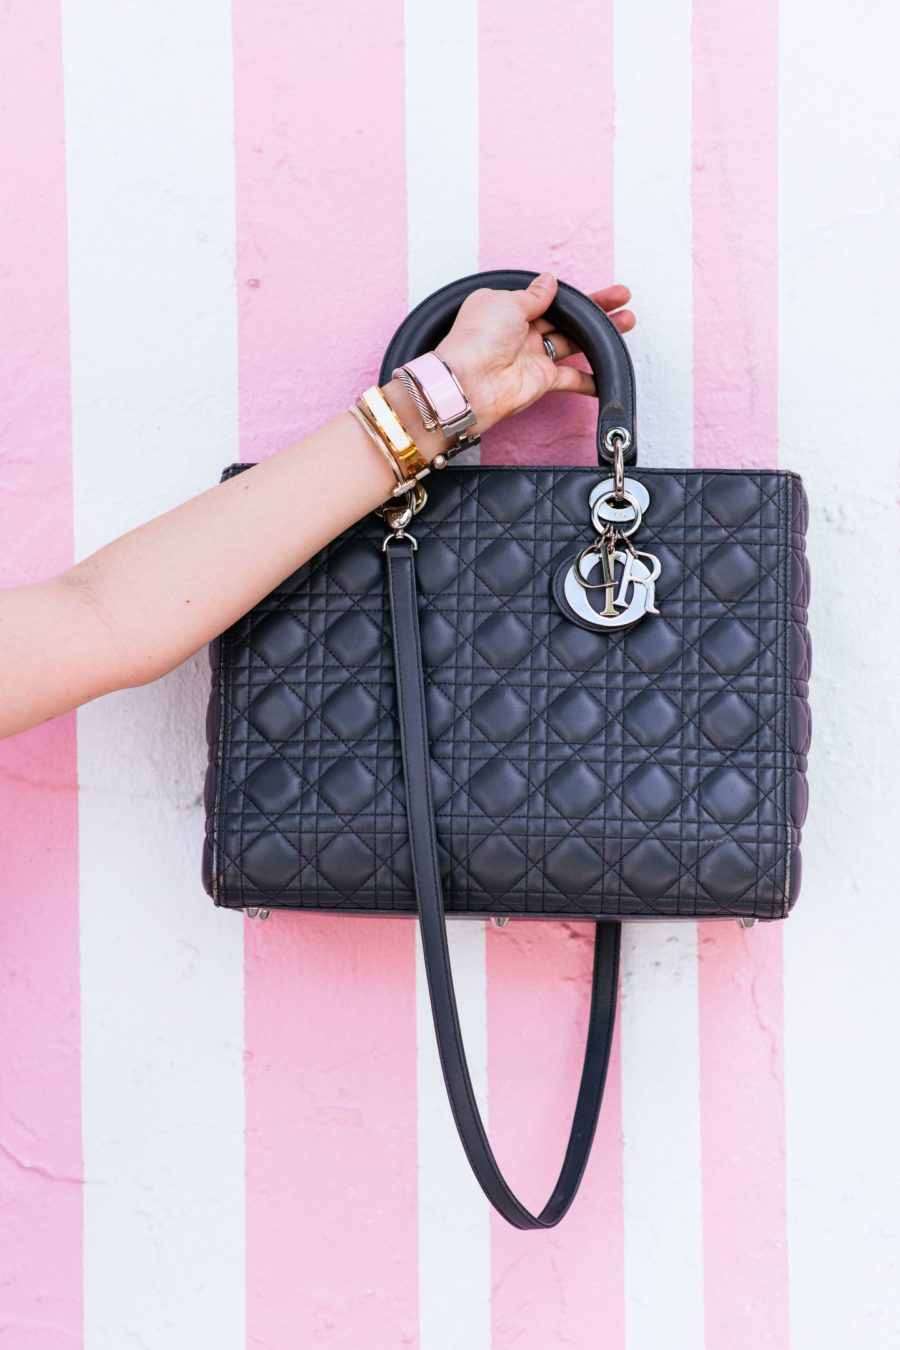 4471f27c0e39 How to purchase designer handbags on a budget - Curated by Kirsten